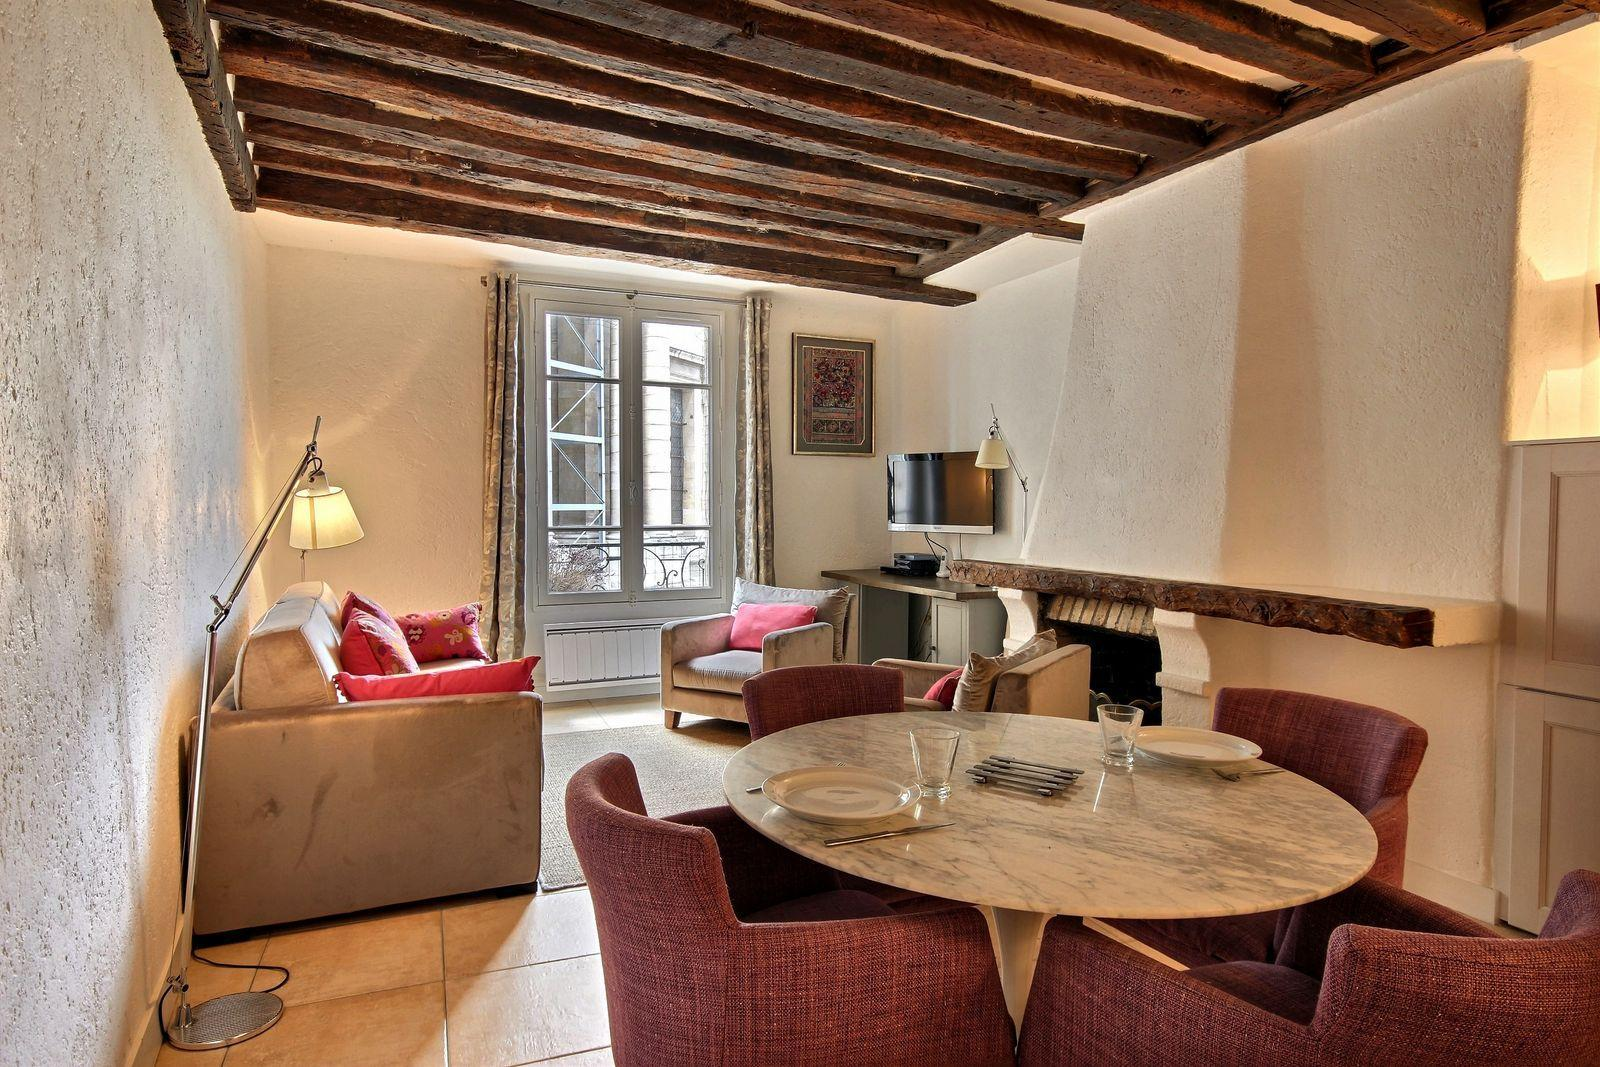 101424 - Warm apartment for 4 people near Les Halles